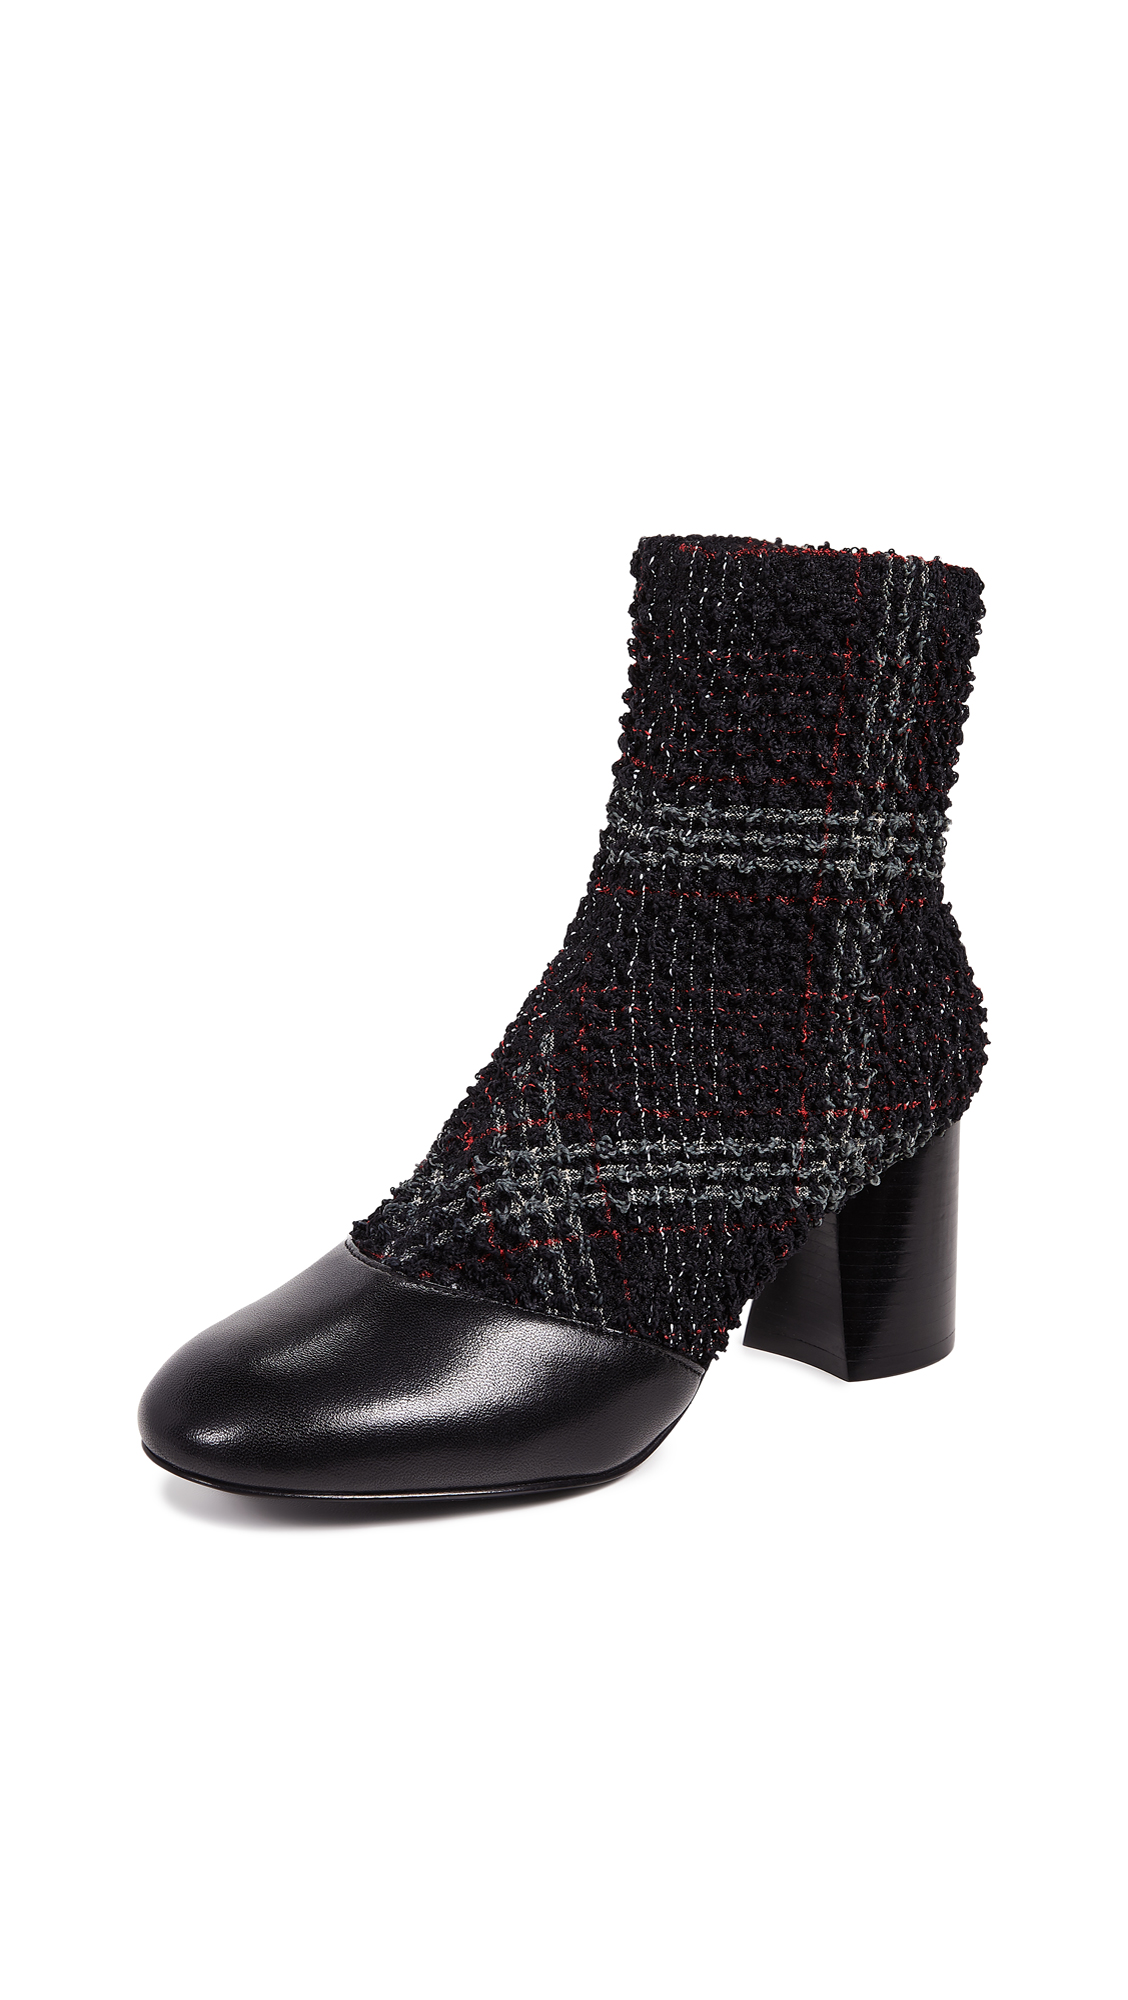 3.1 Phillip Lim Drum Stretch Ankle Booties - Black/Green/Red Check